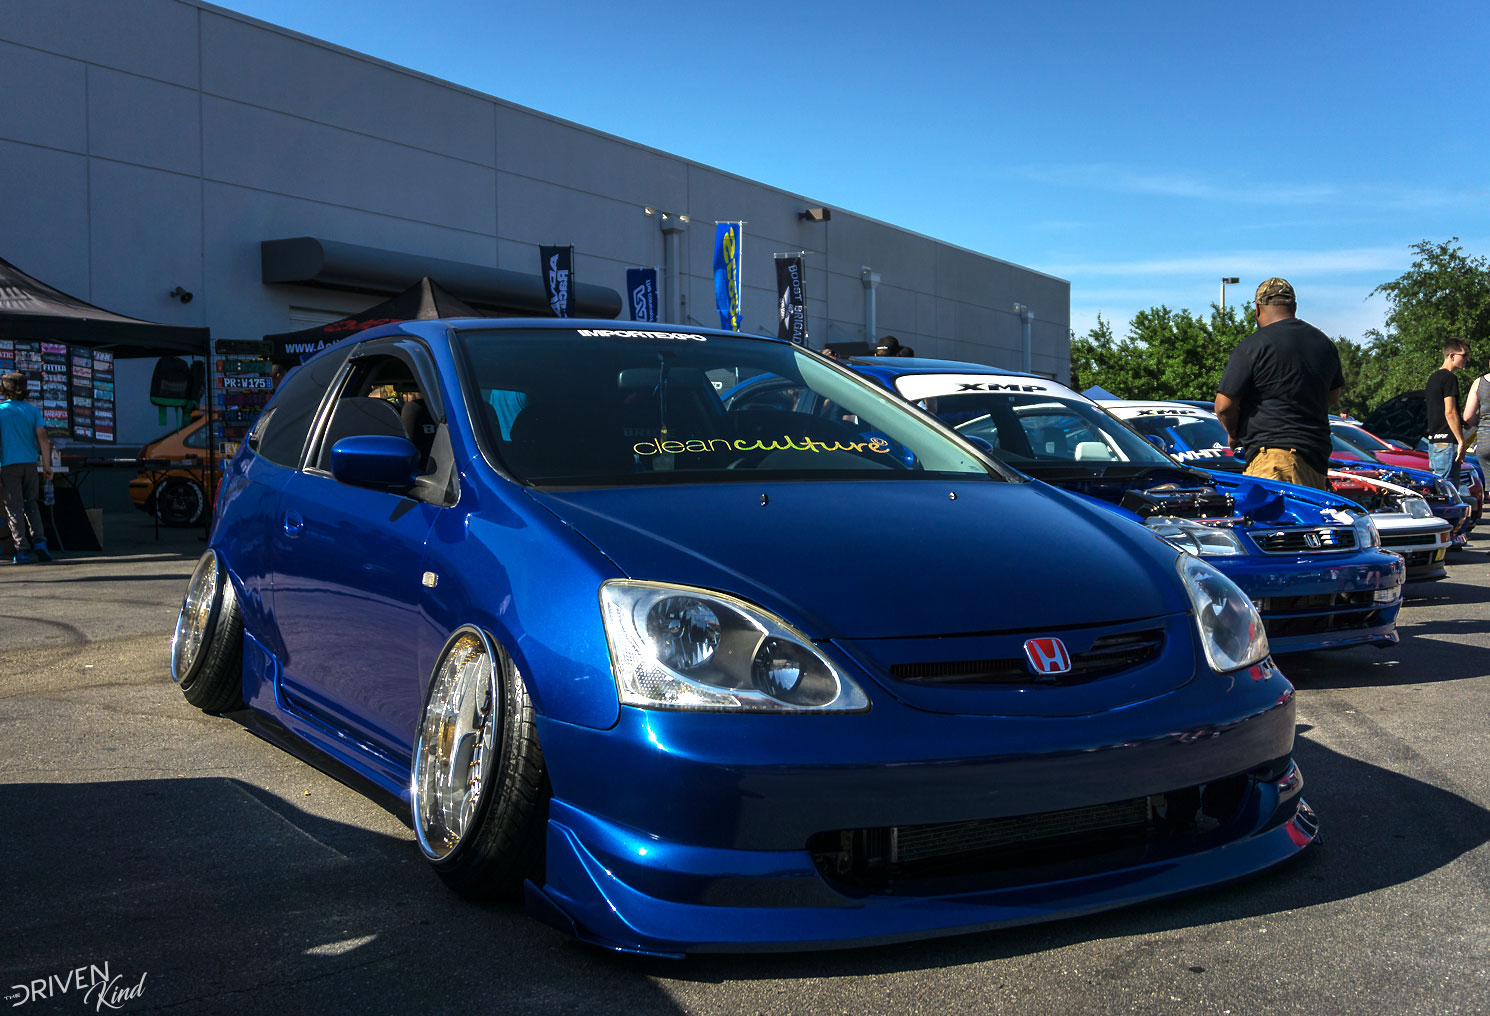 2017 East Coast Eibach Honda Meet Orlando FL coverage by The Driven Kind